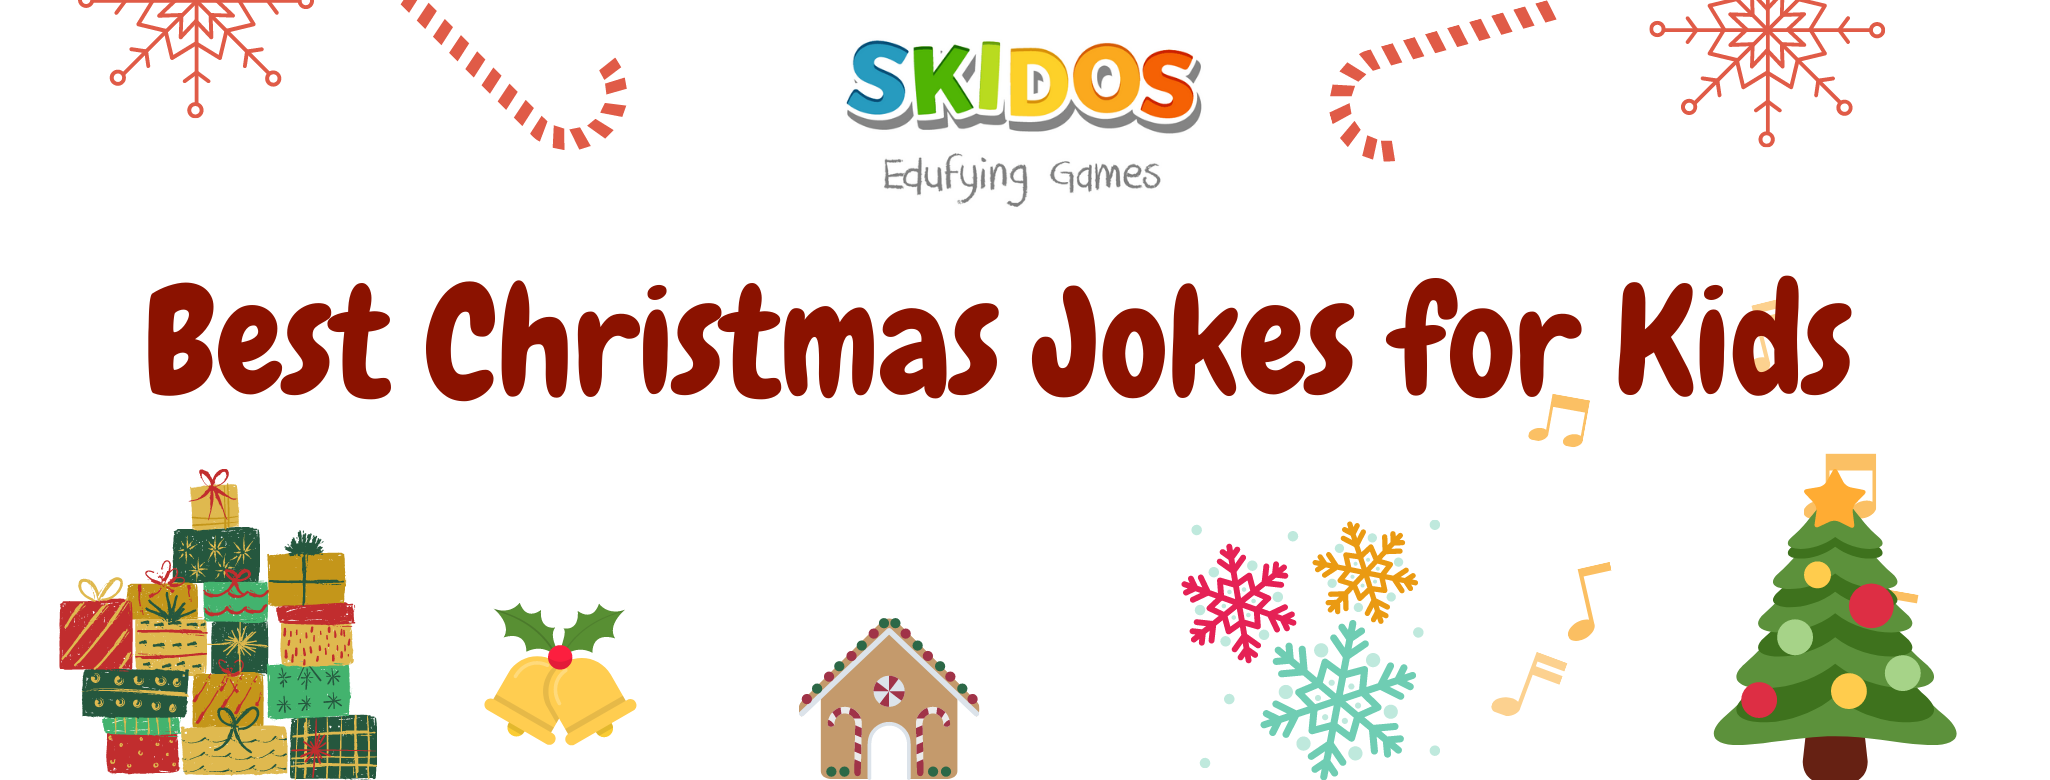 45+ Best Funny Christmas Jokes for Kids! 🎅 [Special Selected]